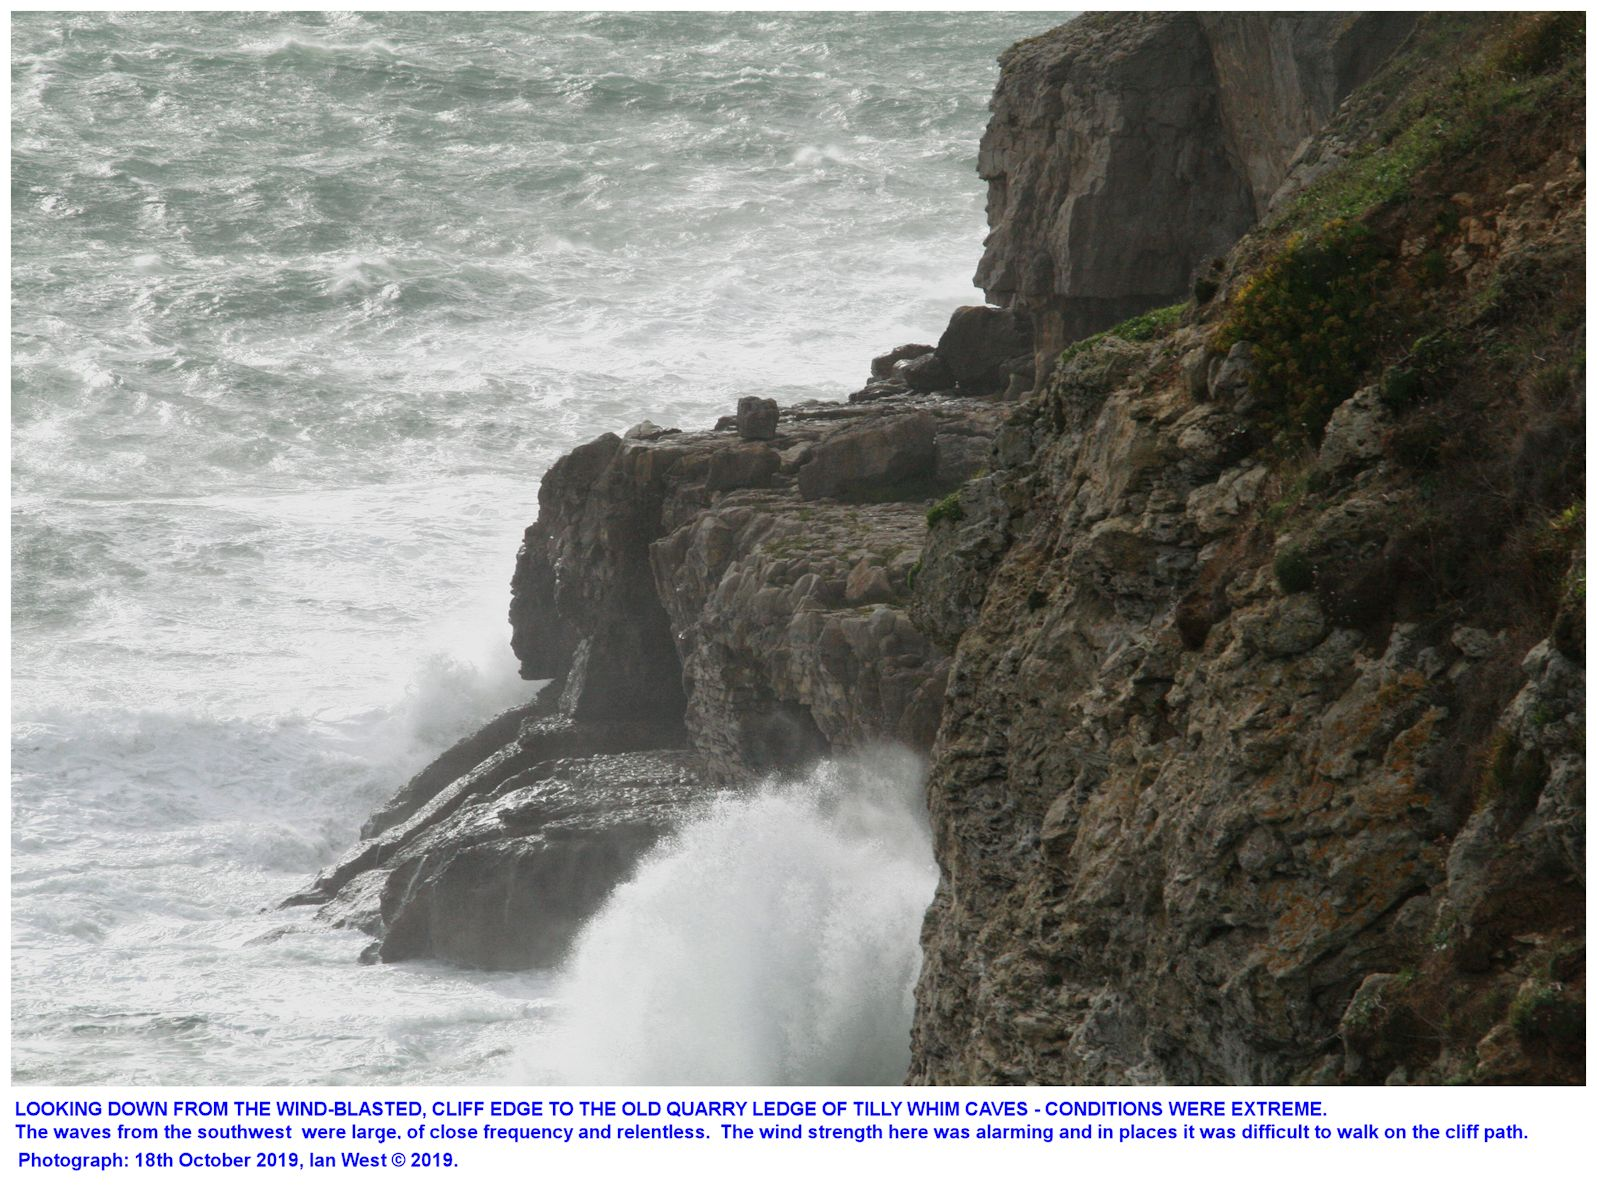 The Tilly Whim Caves ledge as seen in a severe storm, 18th October 2019, Ian West